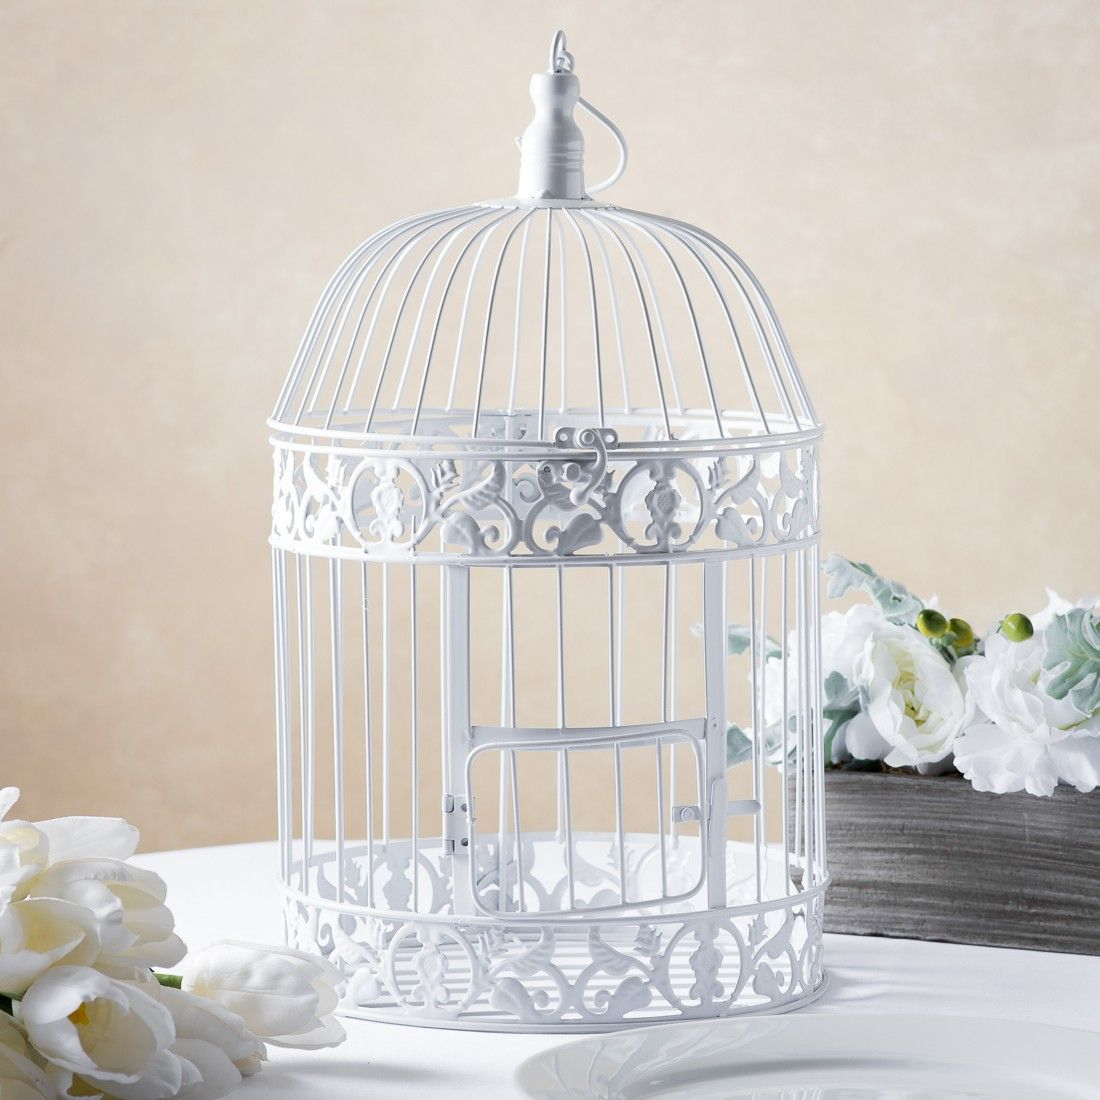 white bird cages for weddings | Bird cages | Pinterest | Bird cages ...